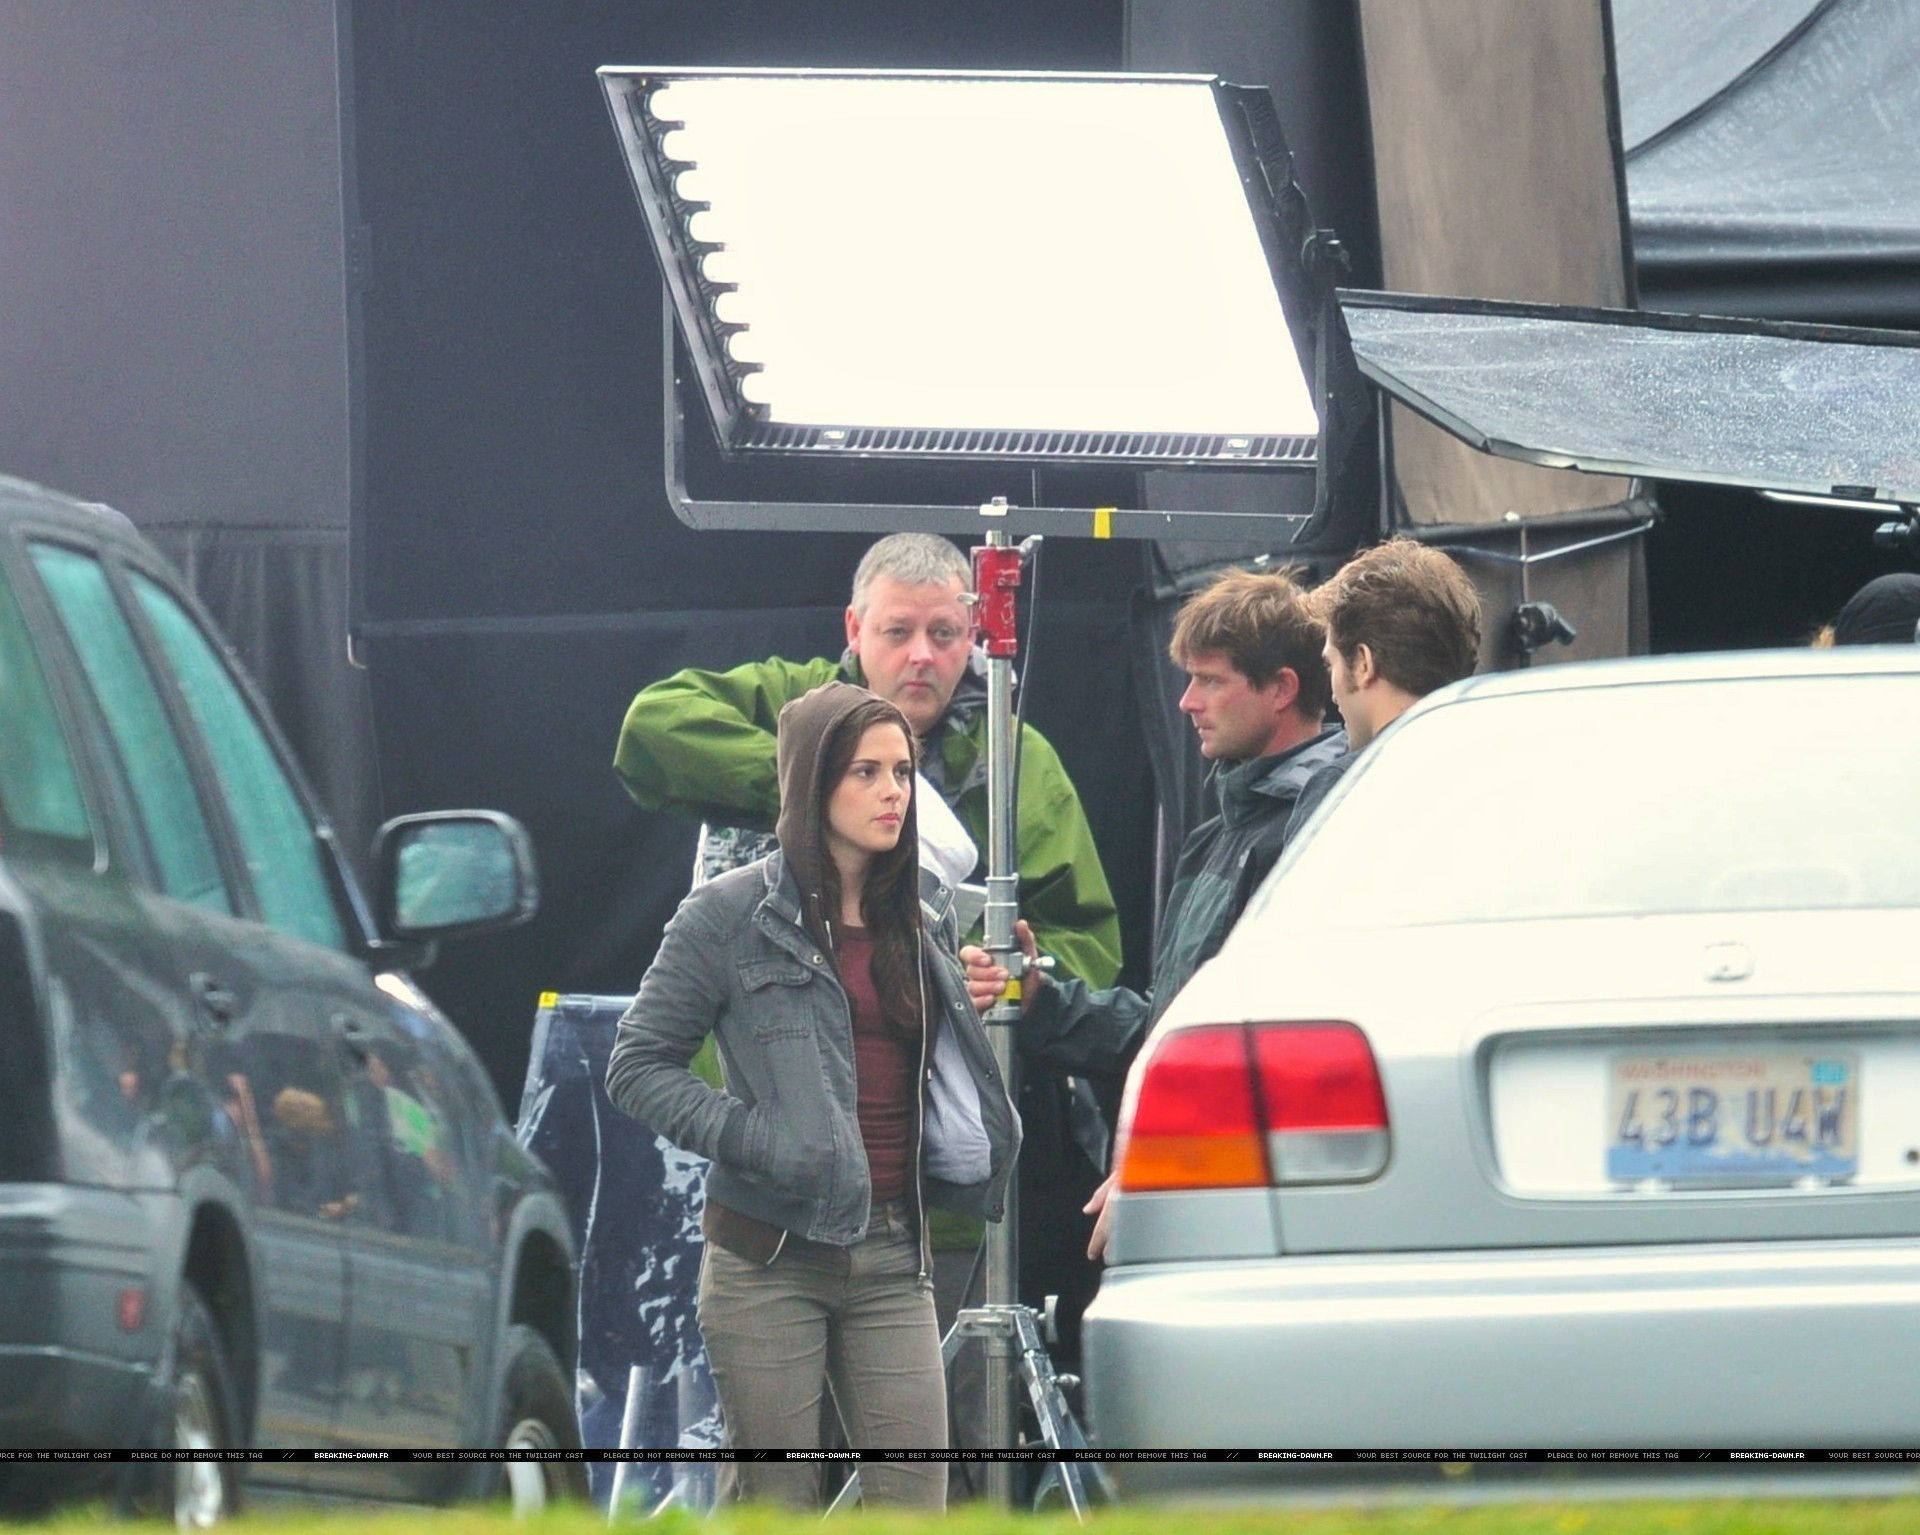 http://images2.fanpop.com/images/photos/8000000/Rob-kristen-on-the-set-of-Eclipse-yesterday-twilight-series-8080082-1920-1535.jpg